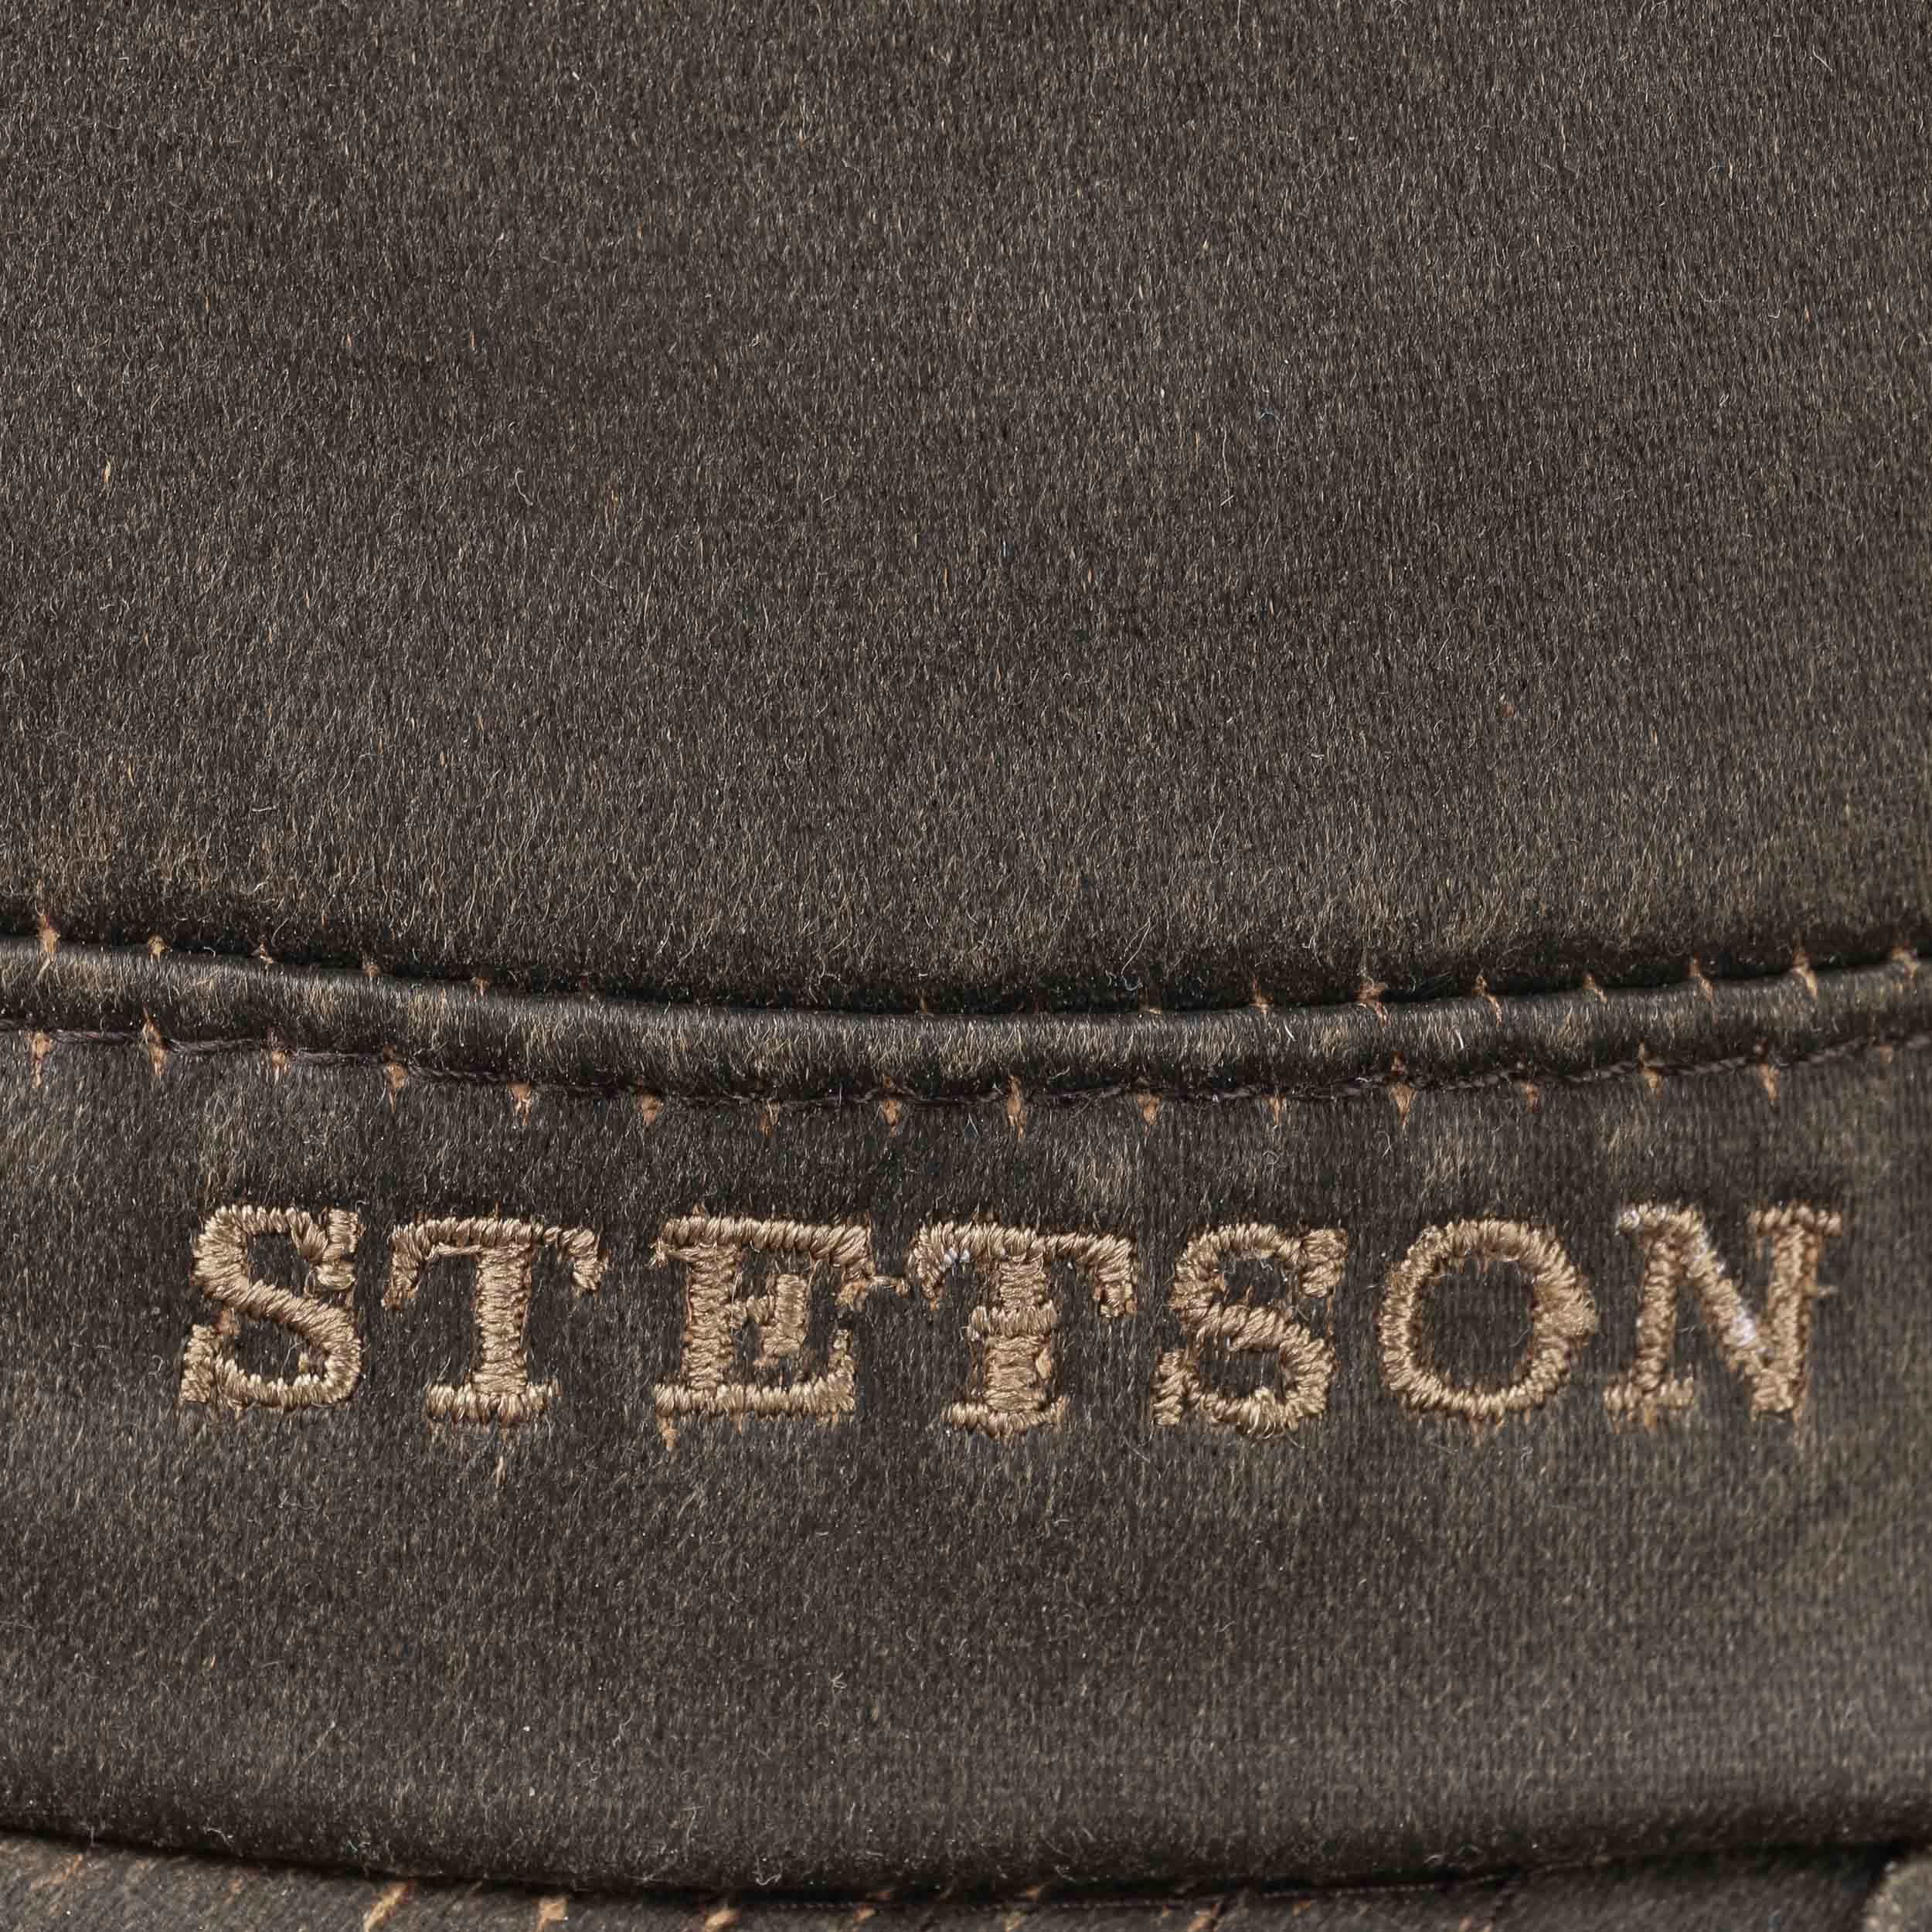 ... Datto Army Cap by Stetson - bruin 4 ... bad789fbc2